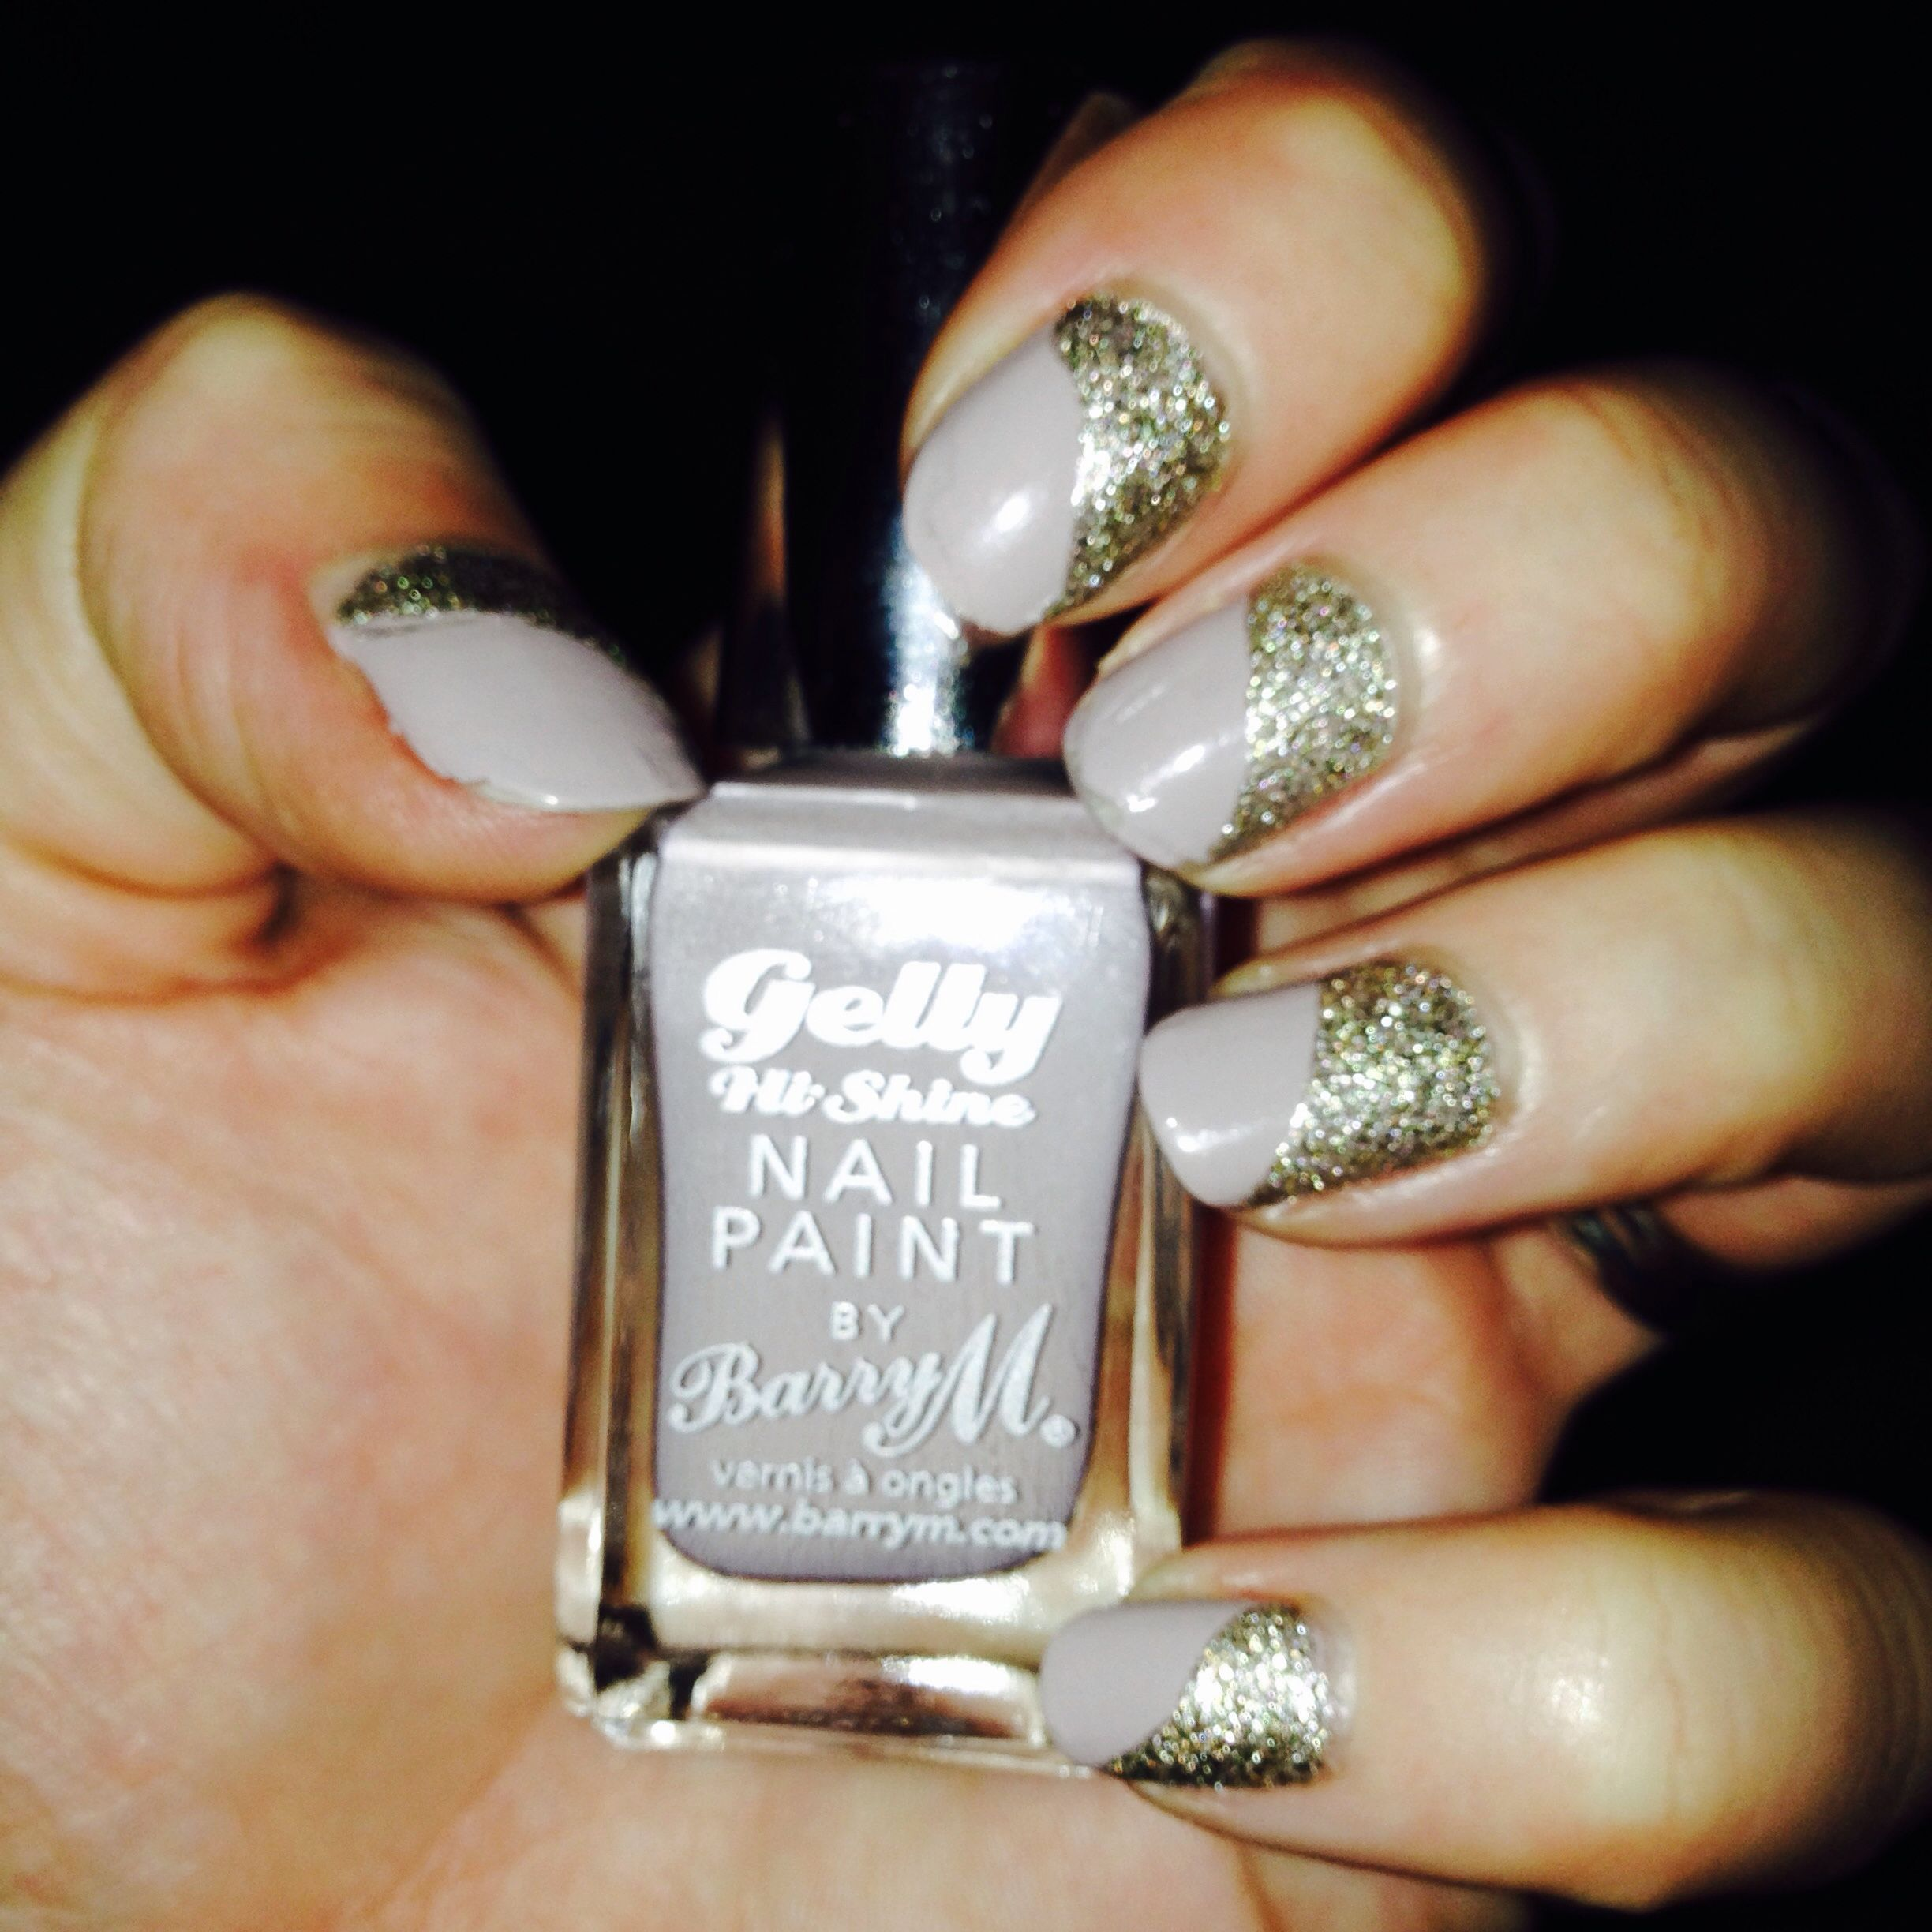 Sparkle: taupe manicure with gold glitter cuticle nail art | Nails ...